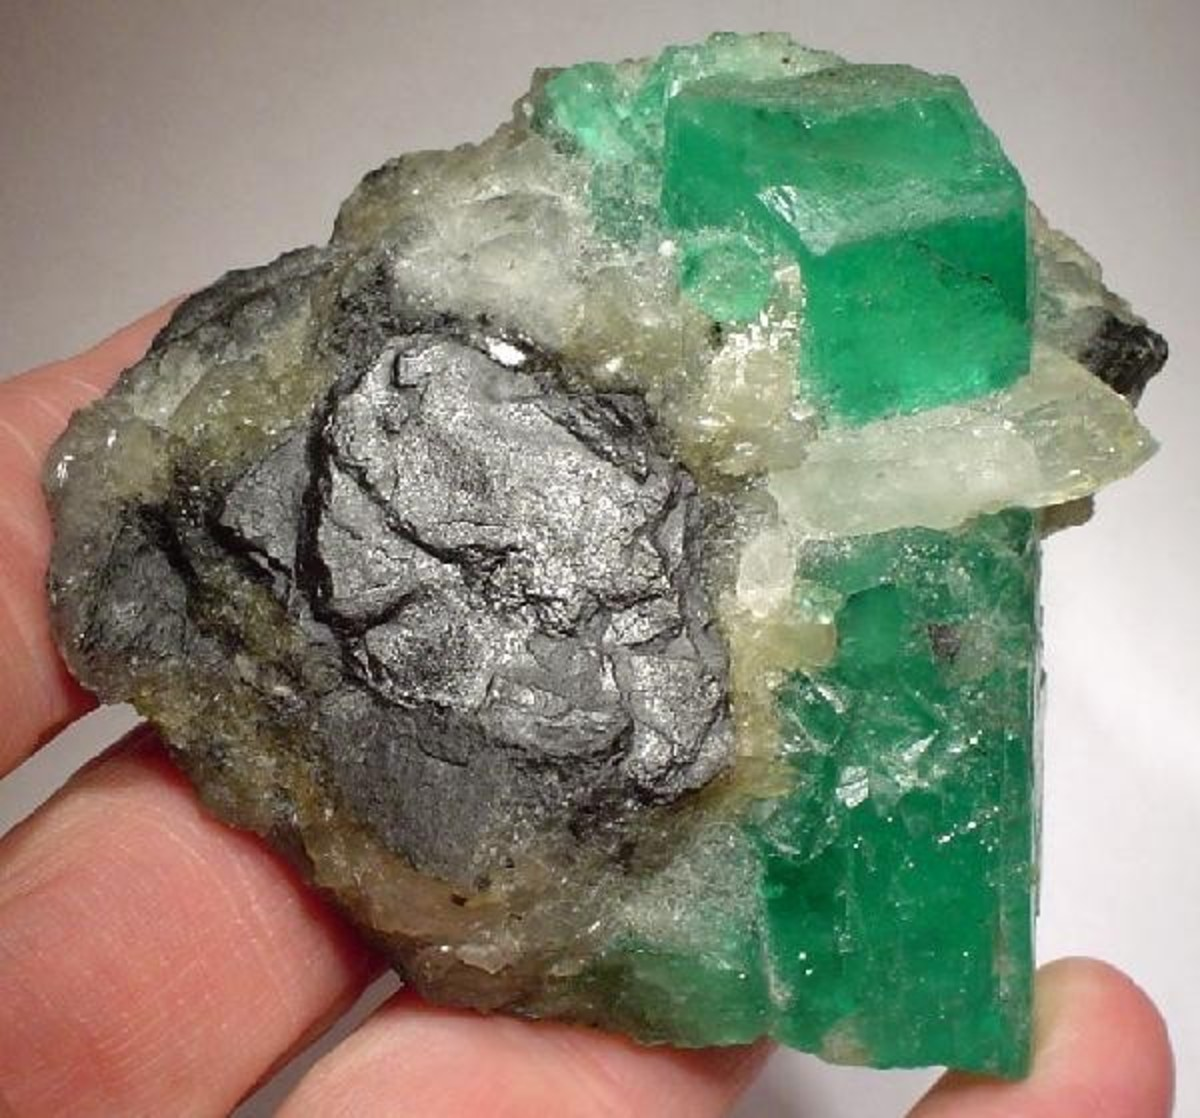 Emerald crystal in calcite and shale matrix from Colombia.